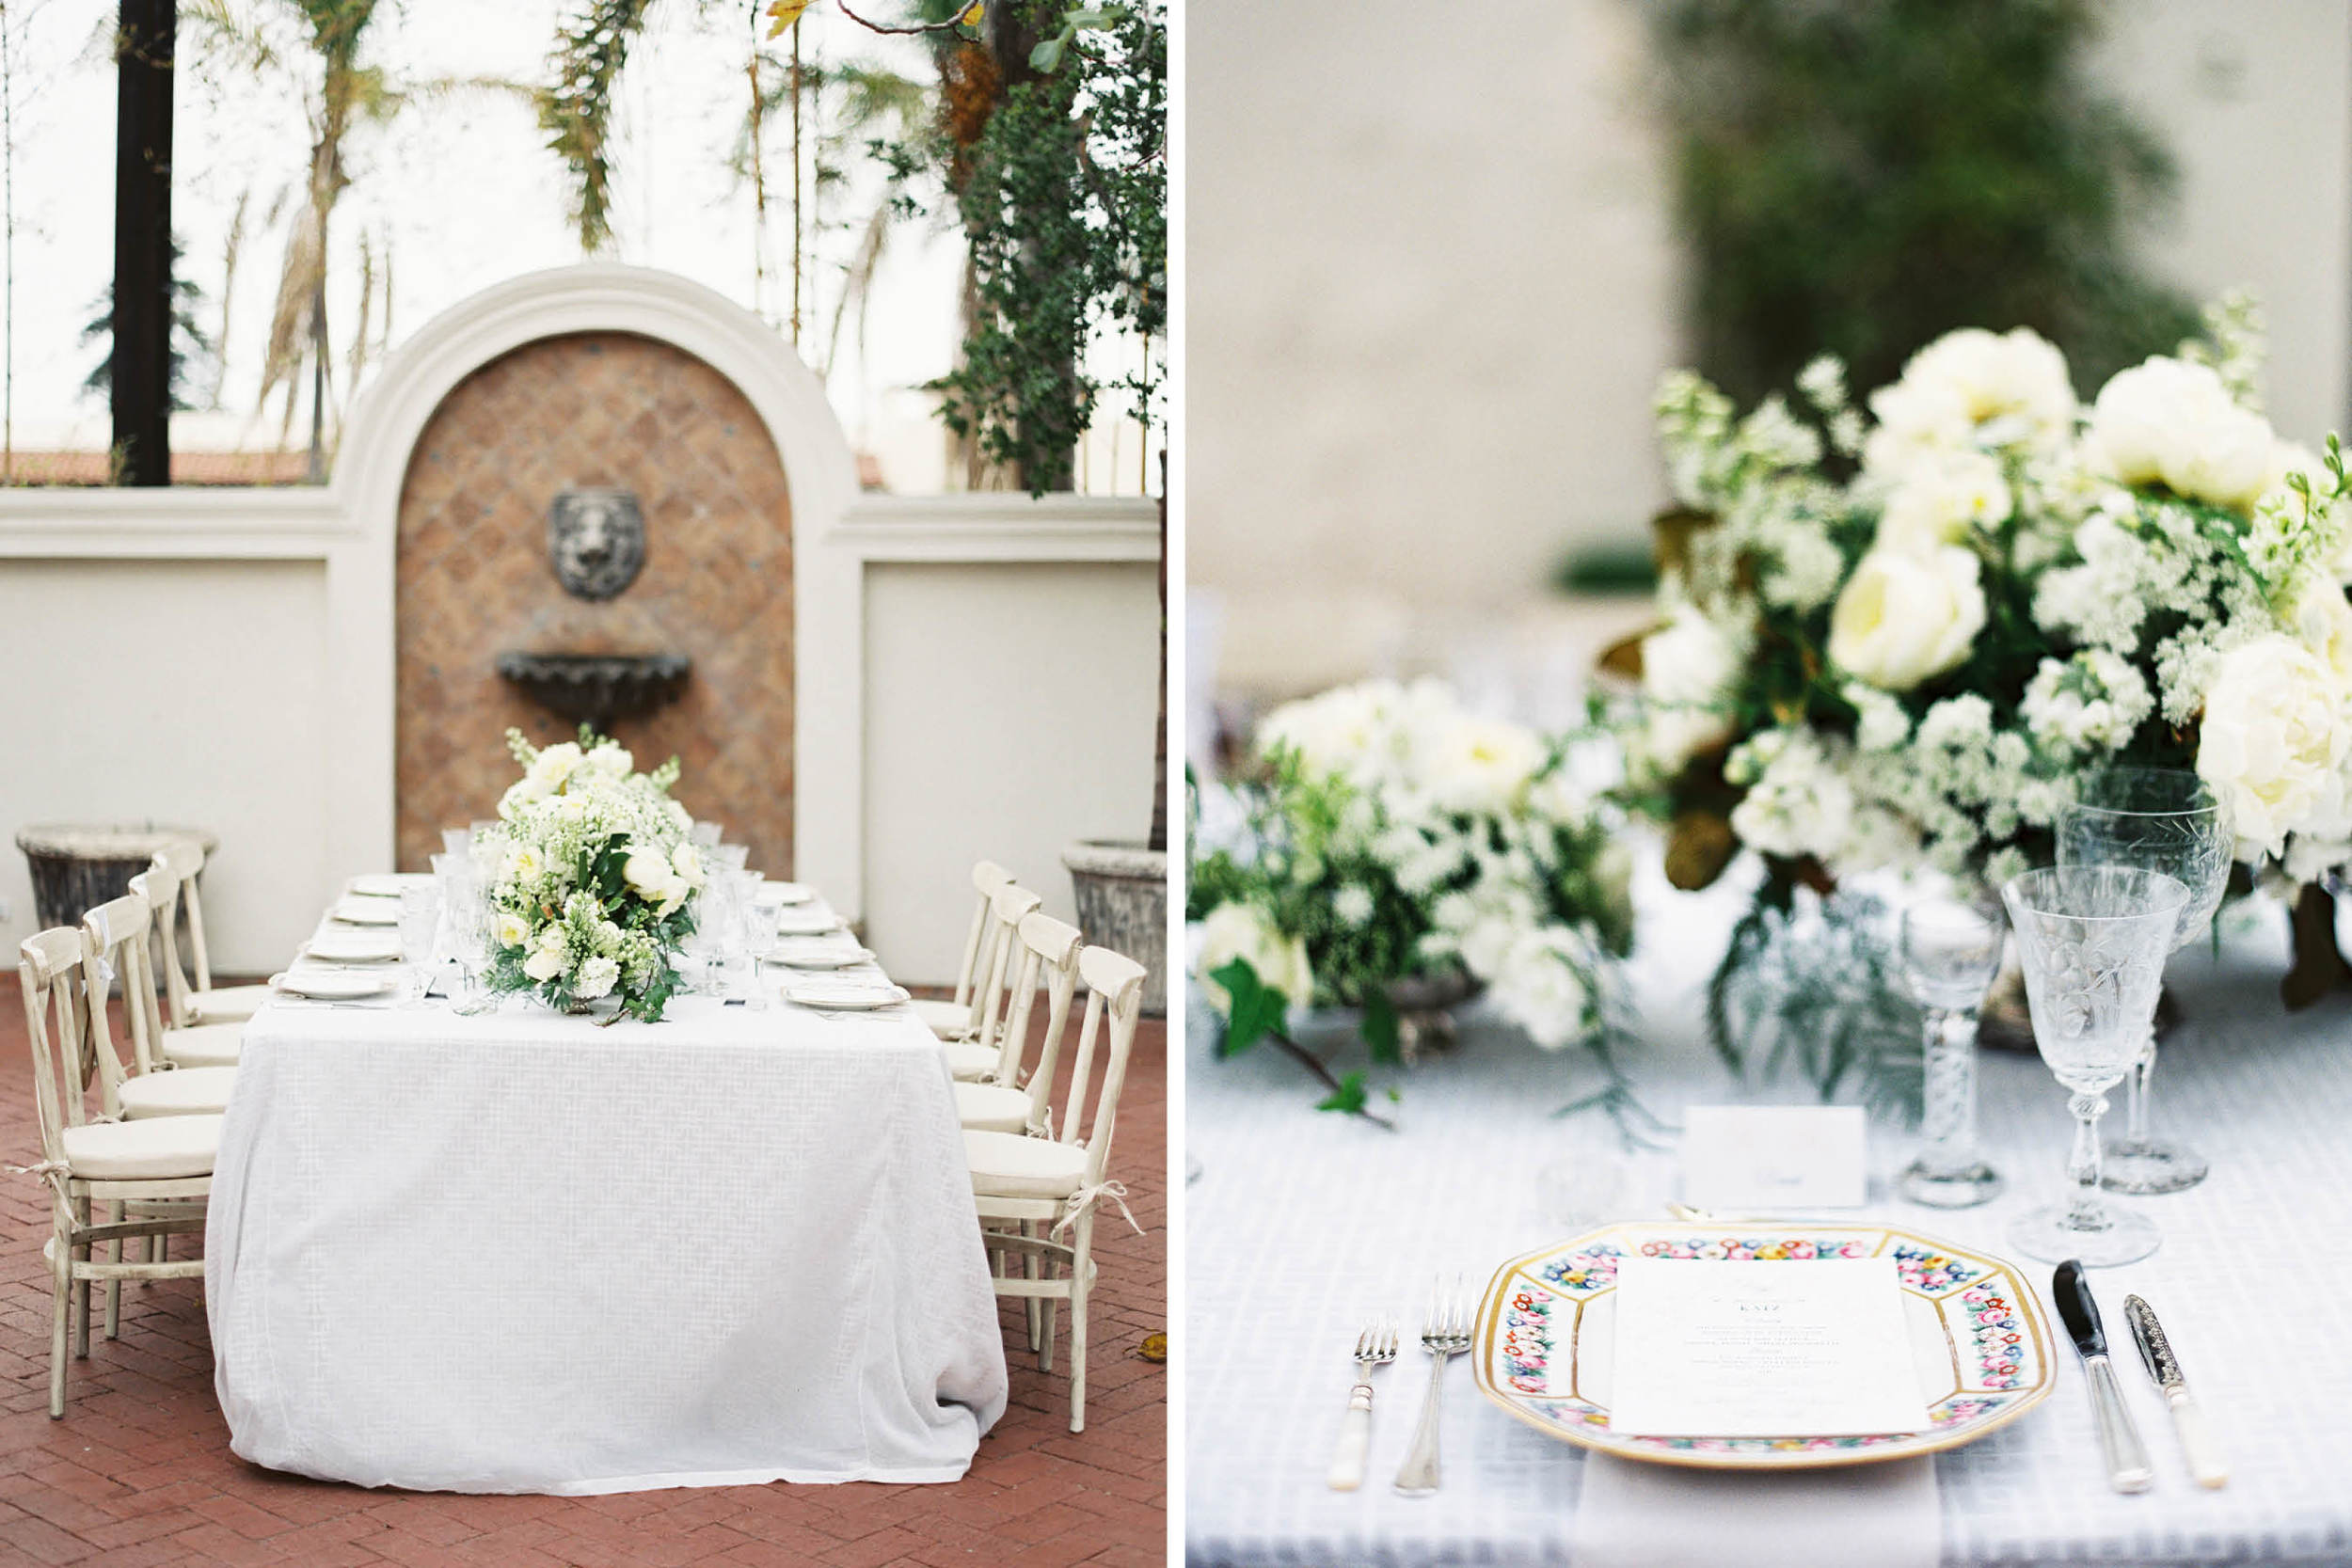 santa-barbara-club-inspiration-styled-shoot-alegria-by-design-wedding-planner-coordinator (15).jpg